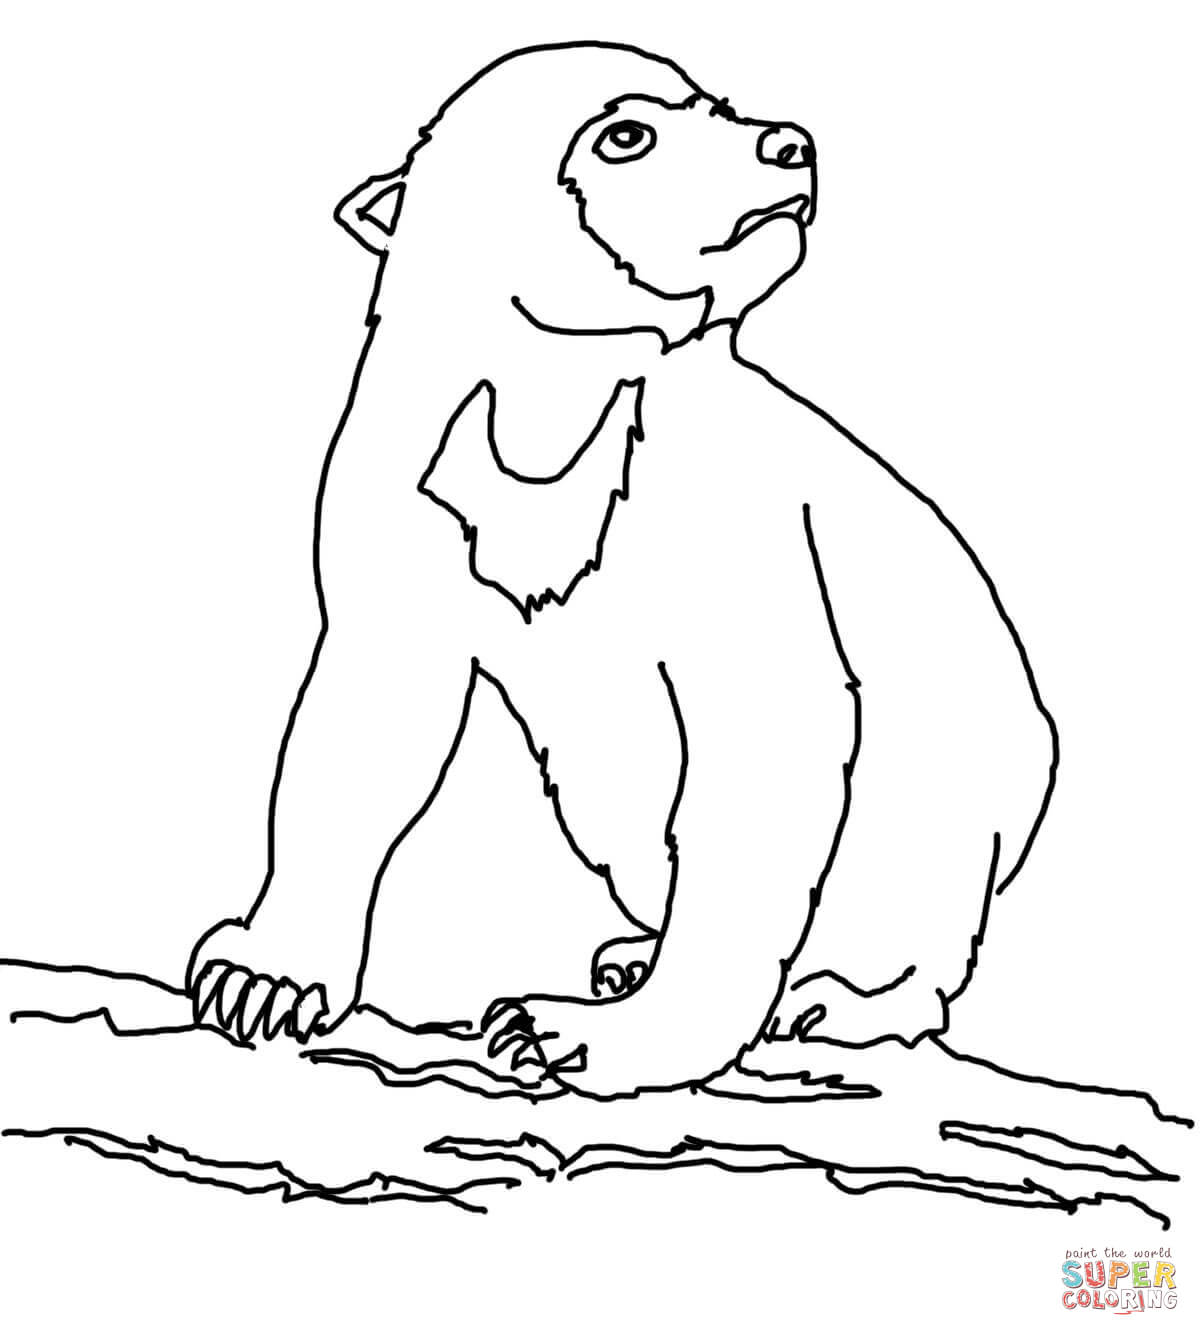 Bears clipart sun bear. Realistic coloring page free